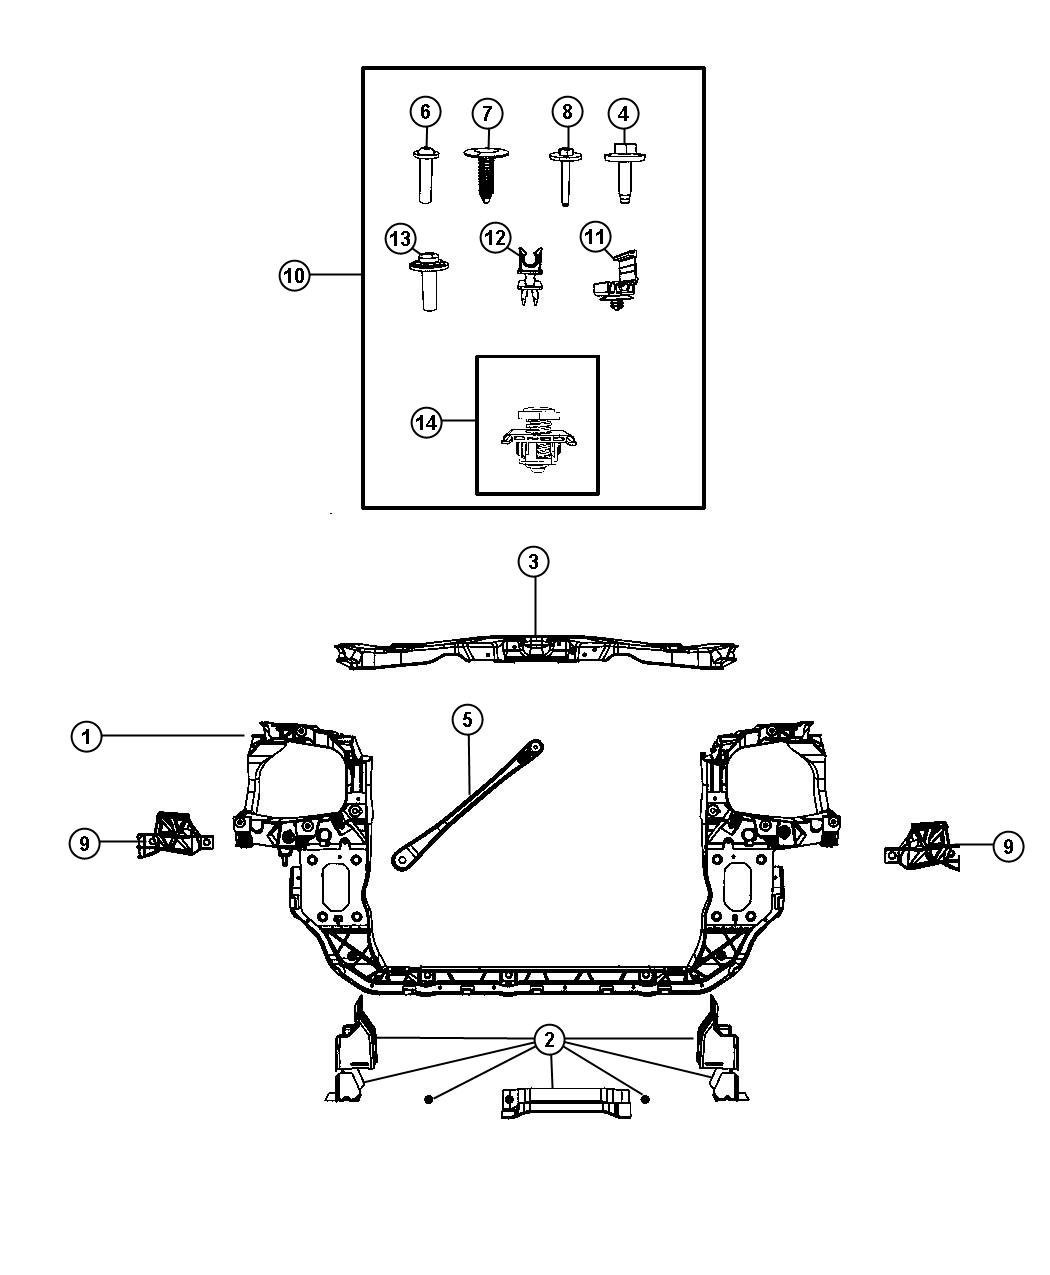 2010 Chrysler Town & Country Fastener kit. Front end